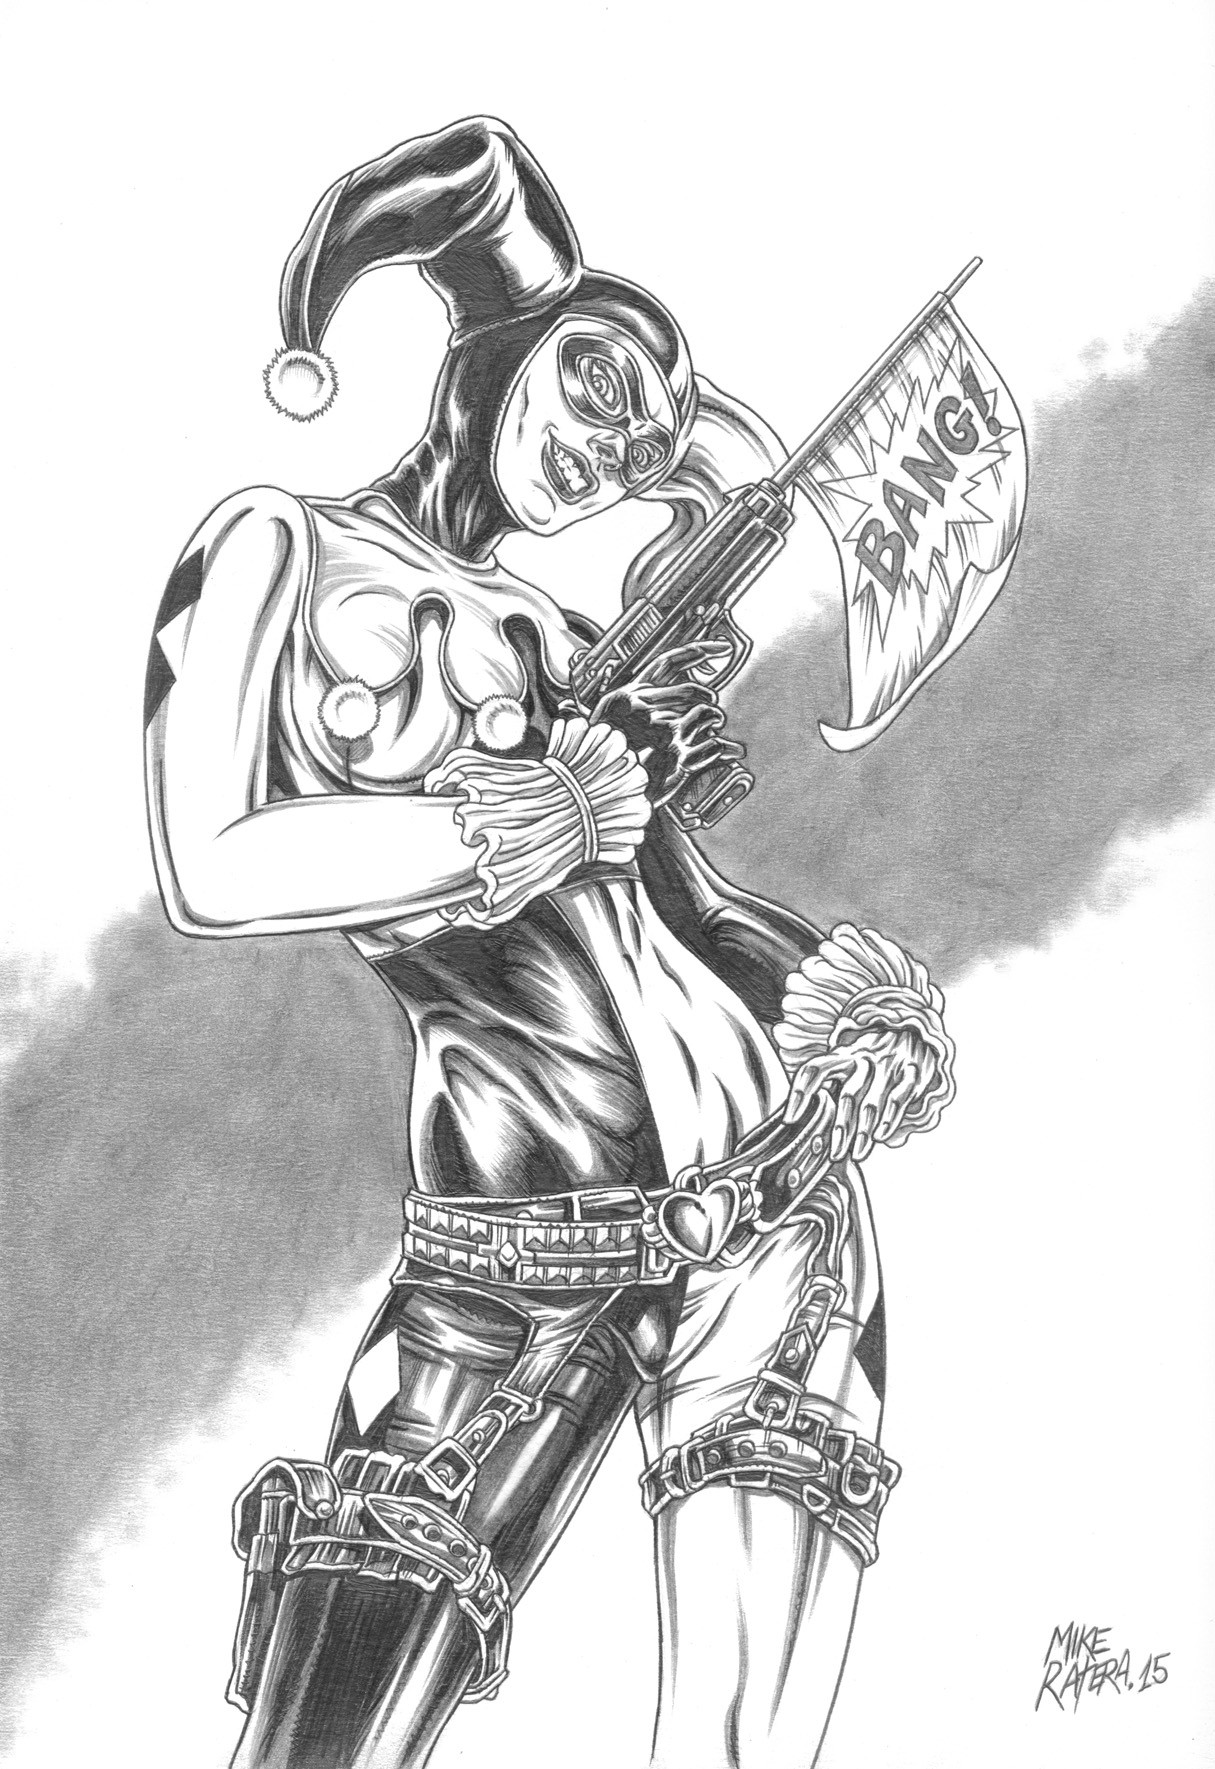 Mike ratera harley quinn 4 bw